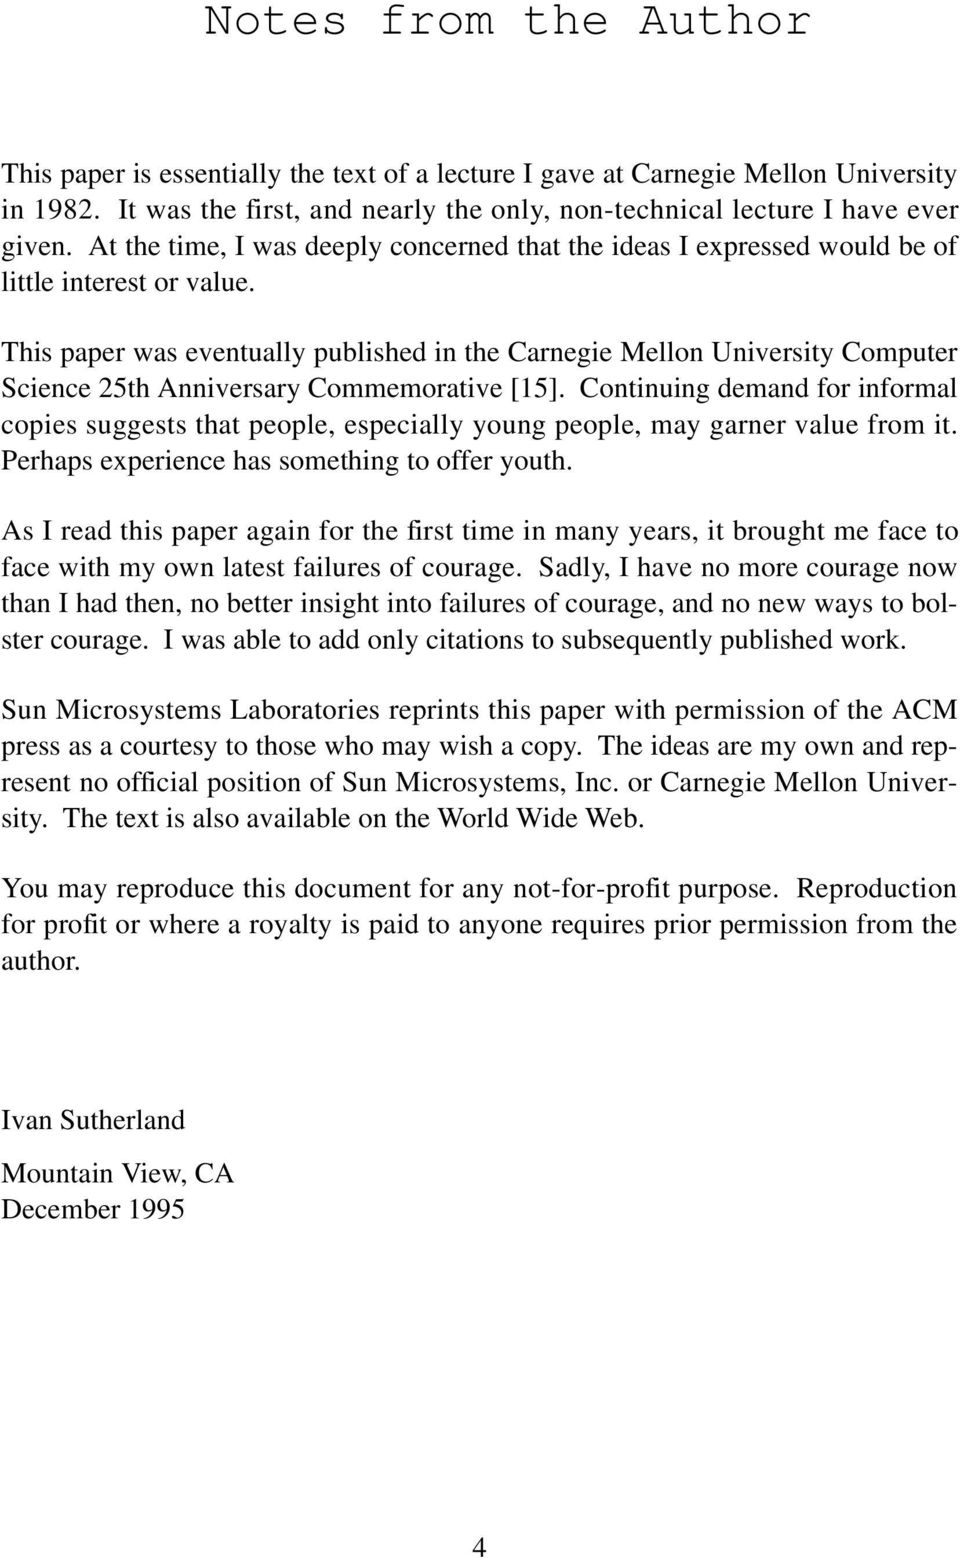 This paper was eventually published in the Carnegie Mellon University Computer Science 25th Anniversary Commemorative [15].